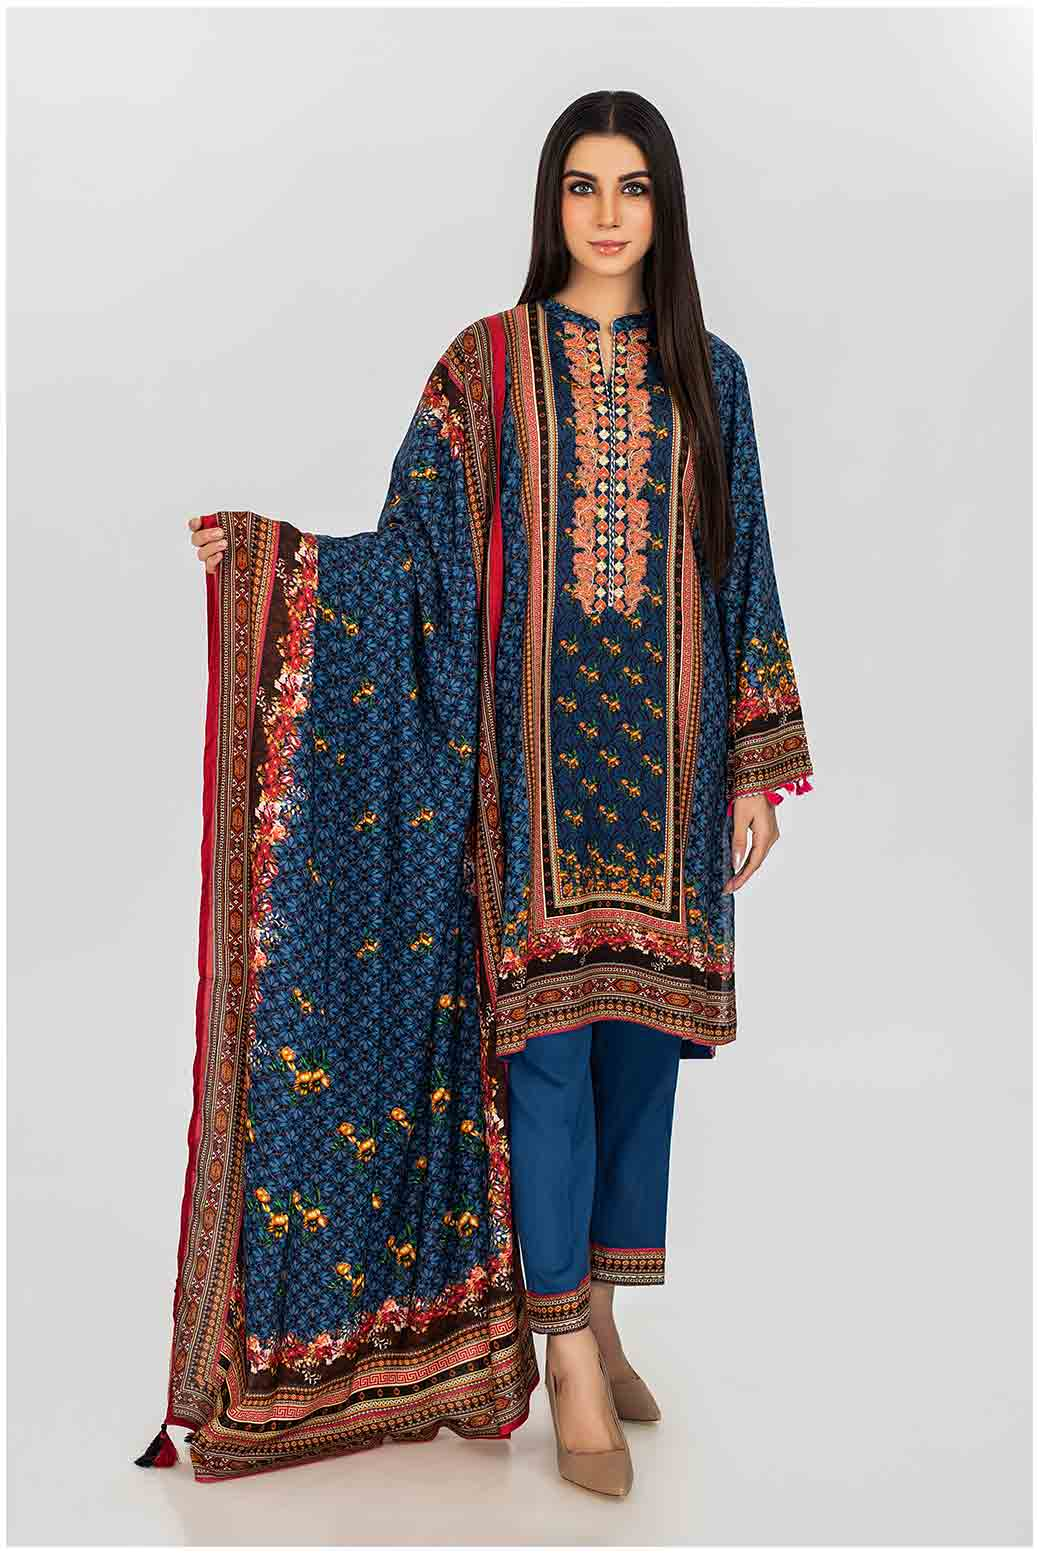 Bonanza Satrangi Digital Printed Viscose Suit